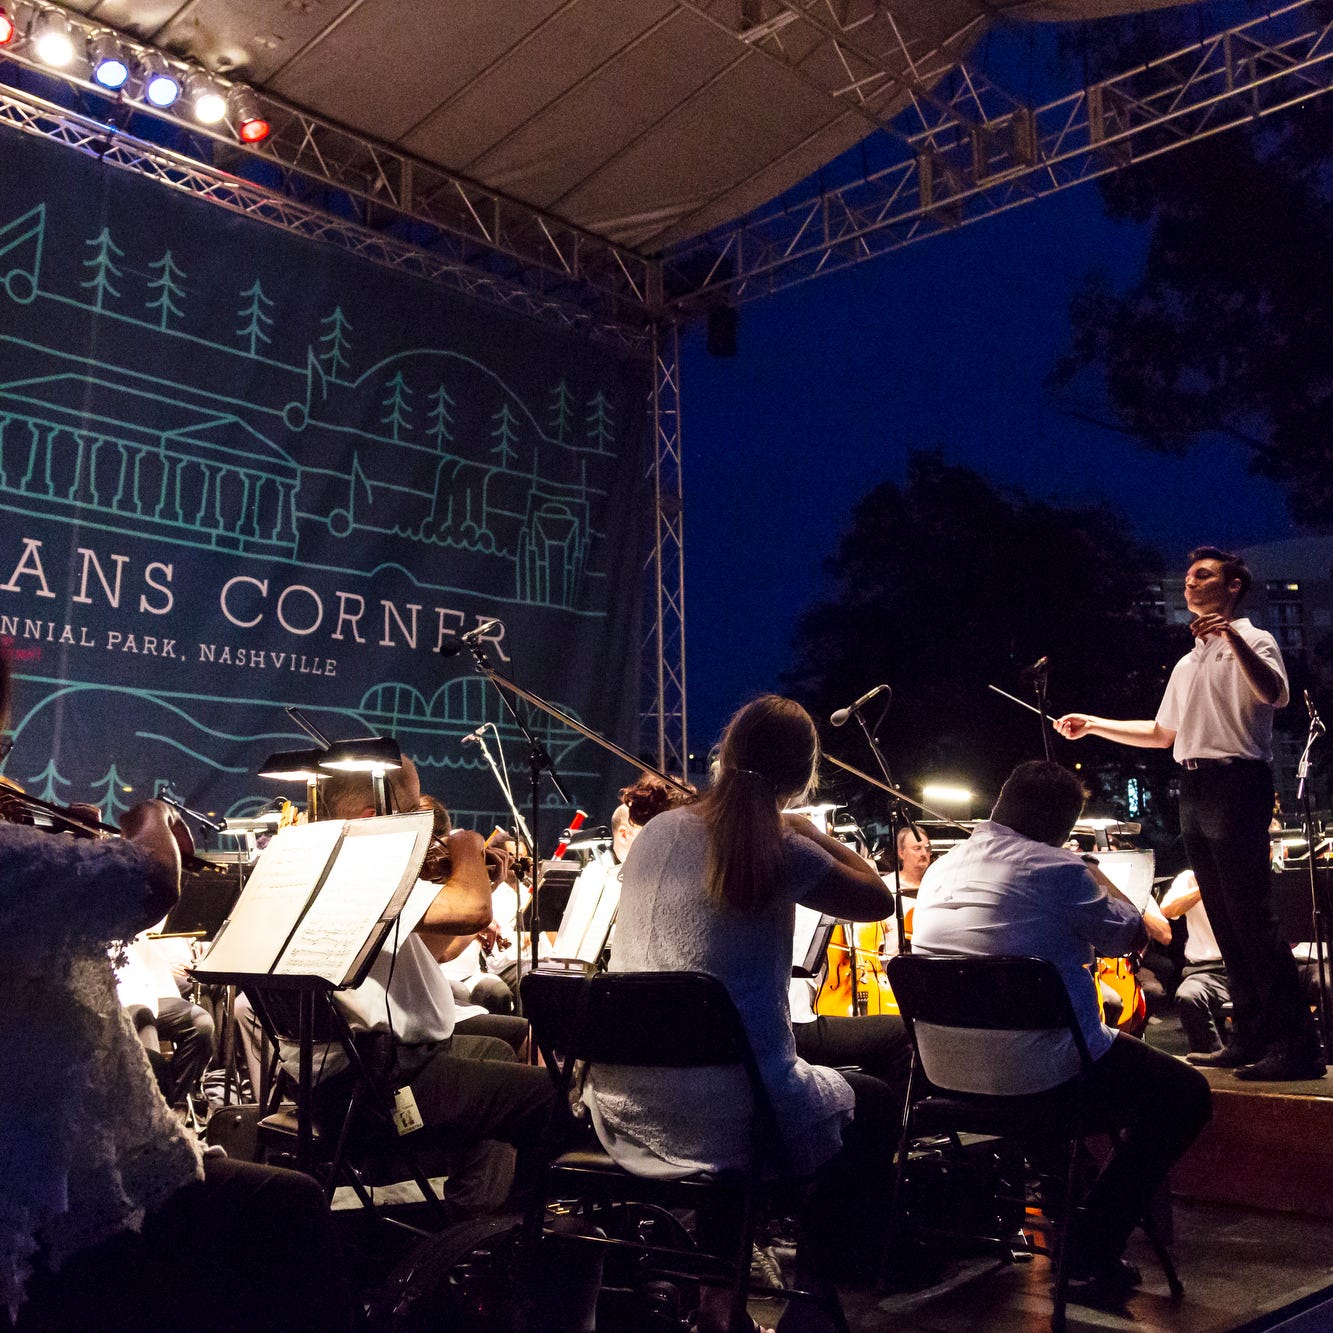 Pack a picnic and watch the Nashville Symphony outdoors for free this summer